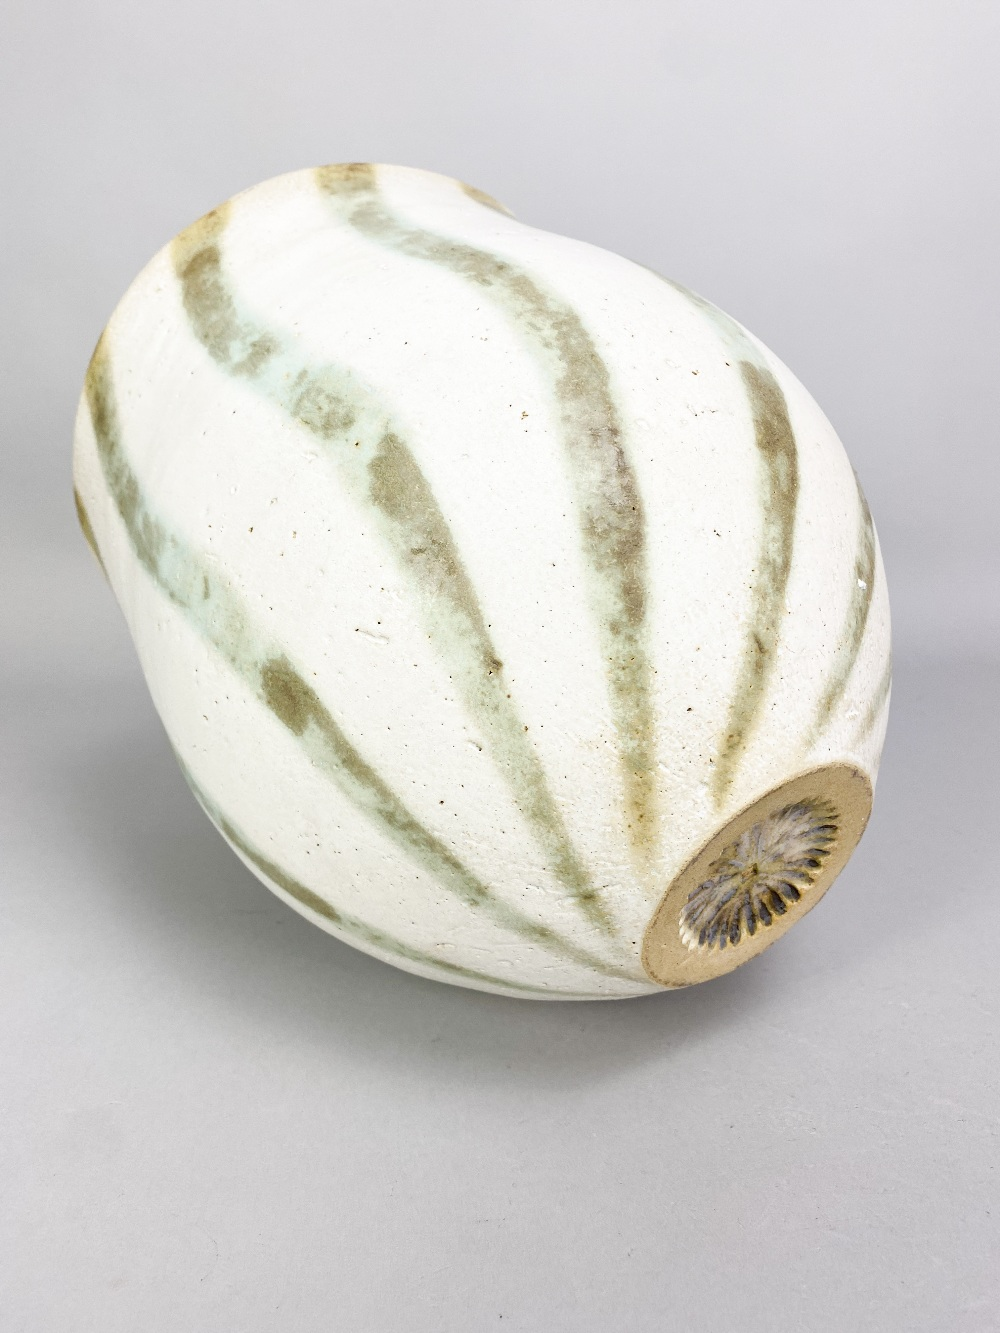 JOHN WARD (born 1938); a deep stoneware vessel with mottled green stripes on off white ground, - Image 4 of 5